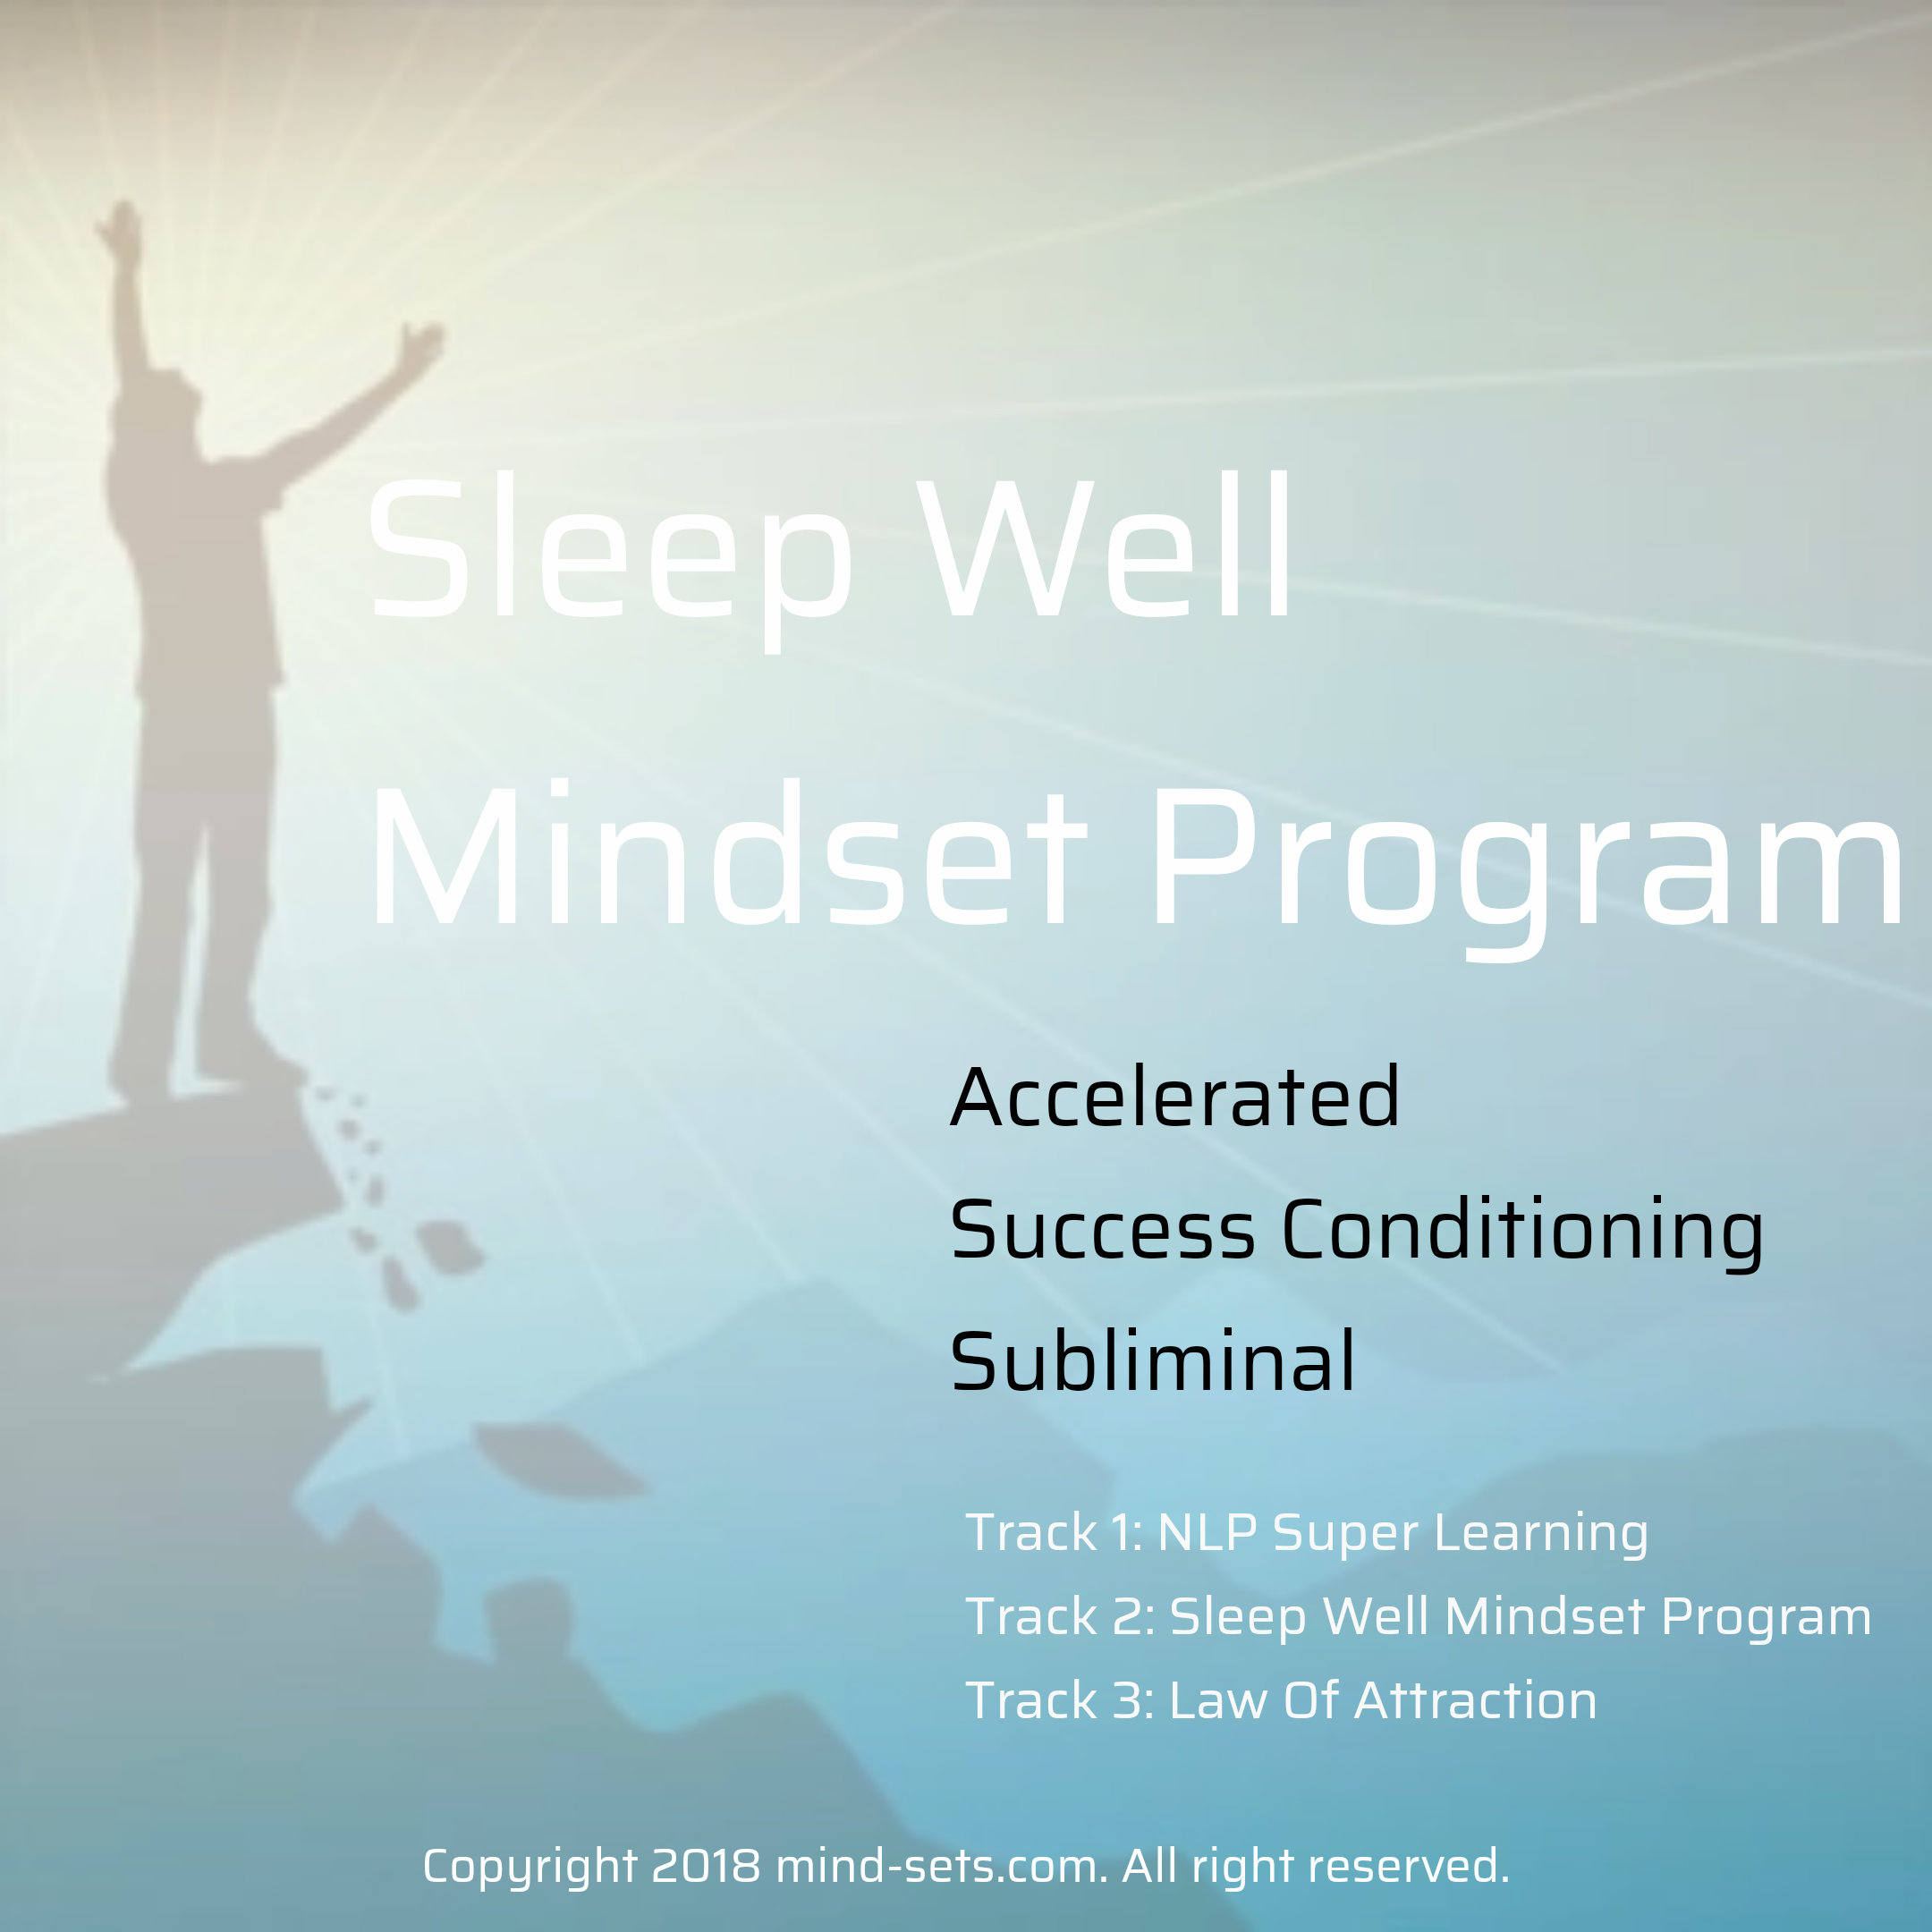 Sleep Well Mindset Program